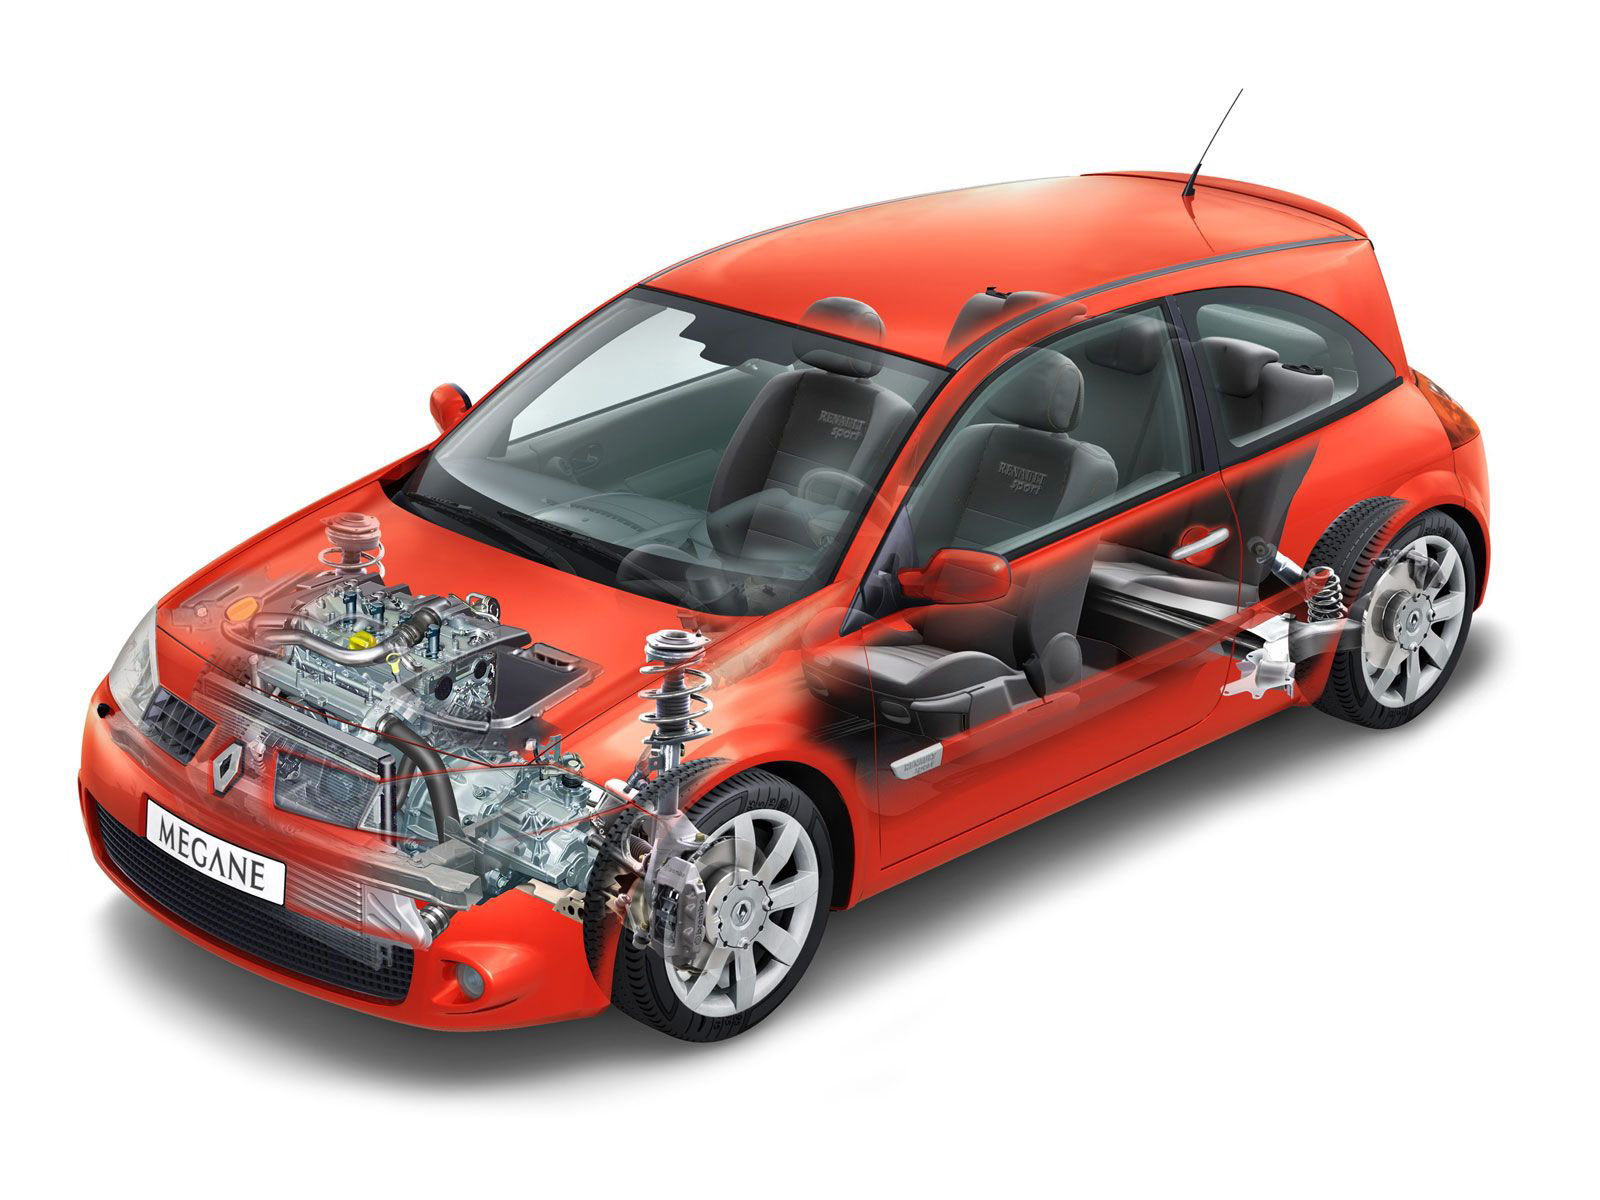 Renault Megane RS cutaway drawing